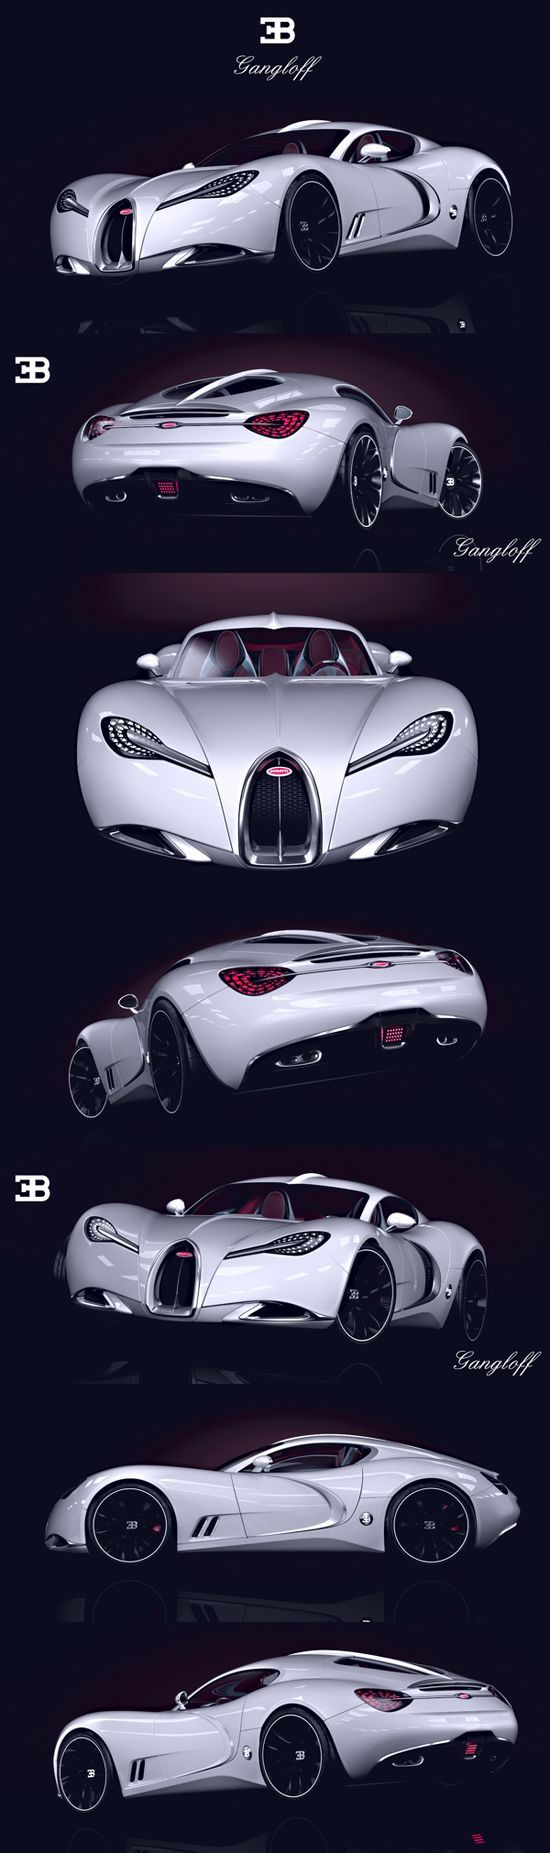 BUGATTI GANGLOFF CONCEPT #luxury sports cars #celebritys sport cars #customized…